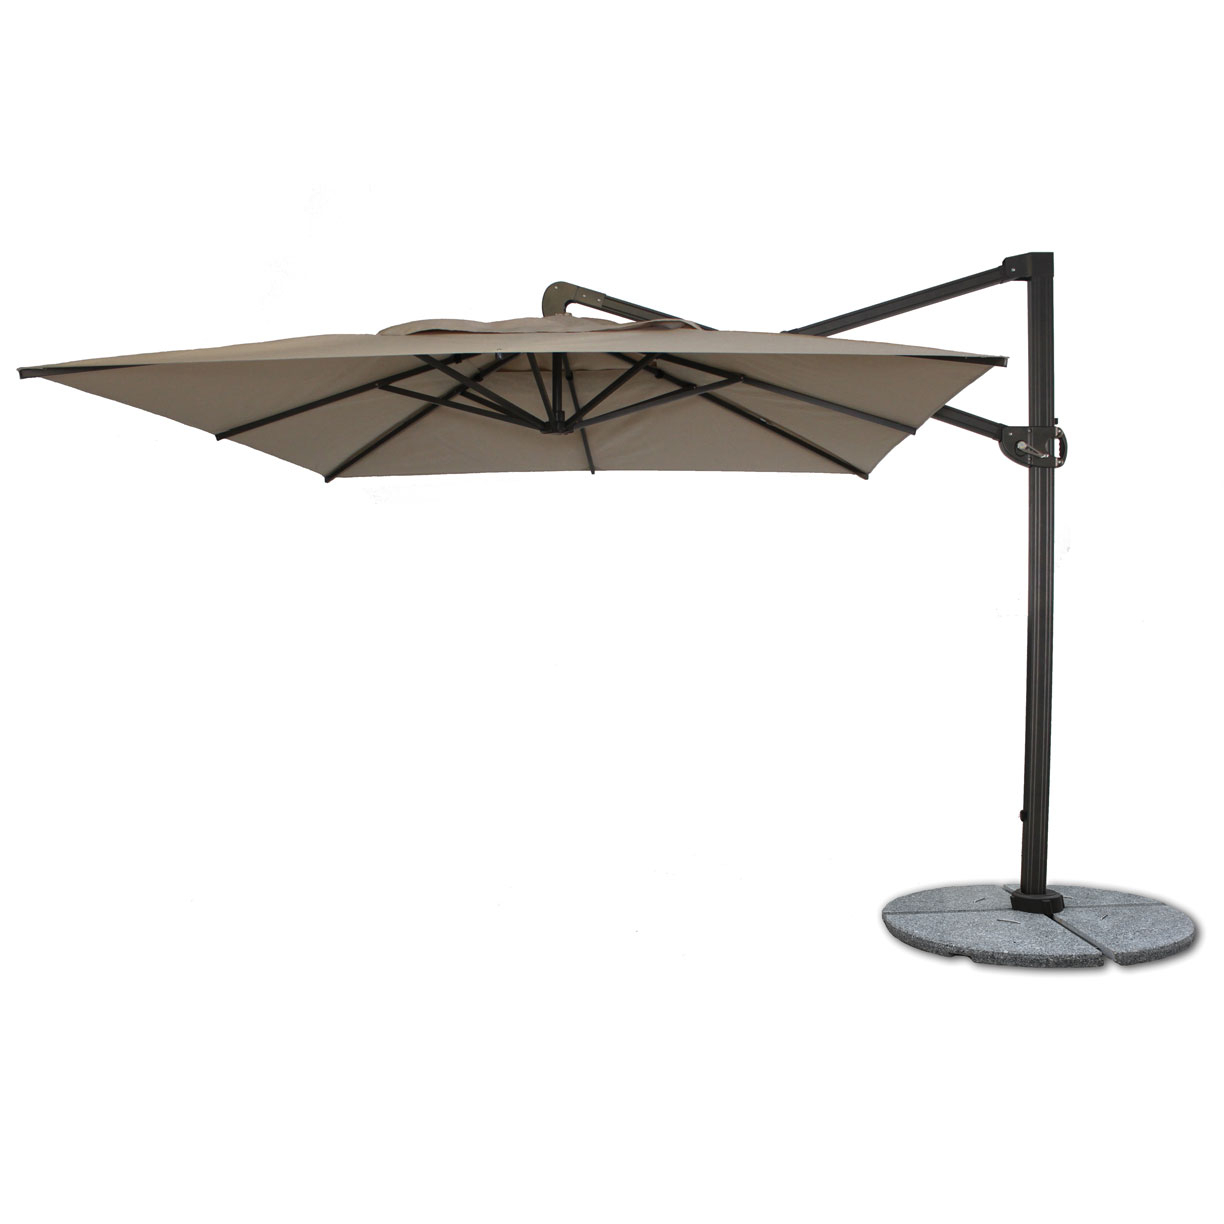 Anova Intended For Well Known Fordwich  Rectangular Cantilever Umbrellas (View 5 of 20)